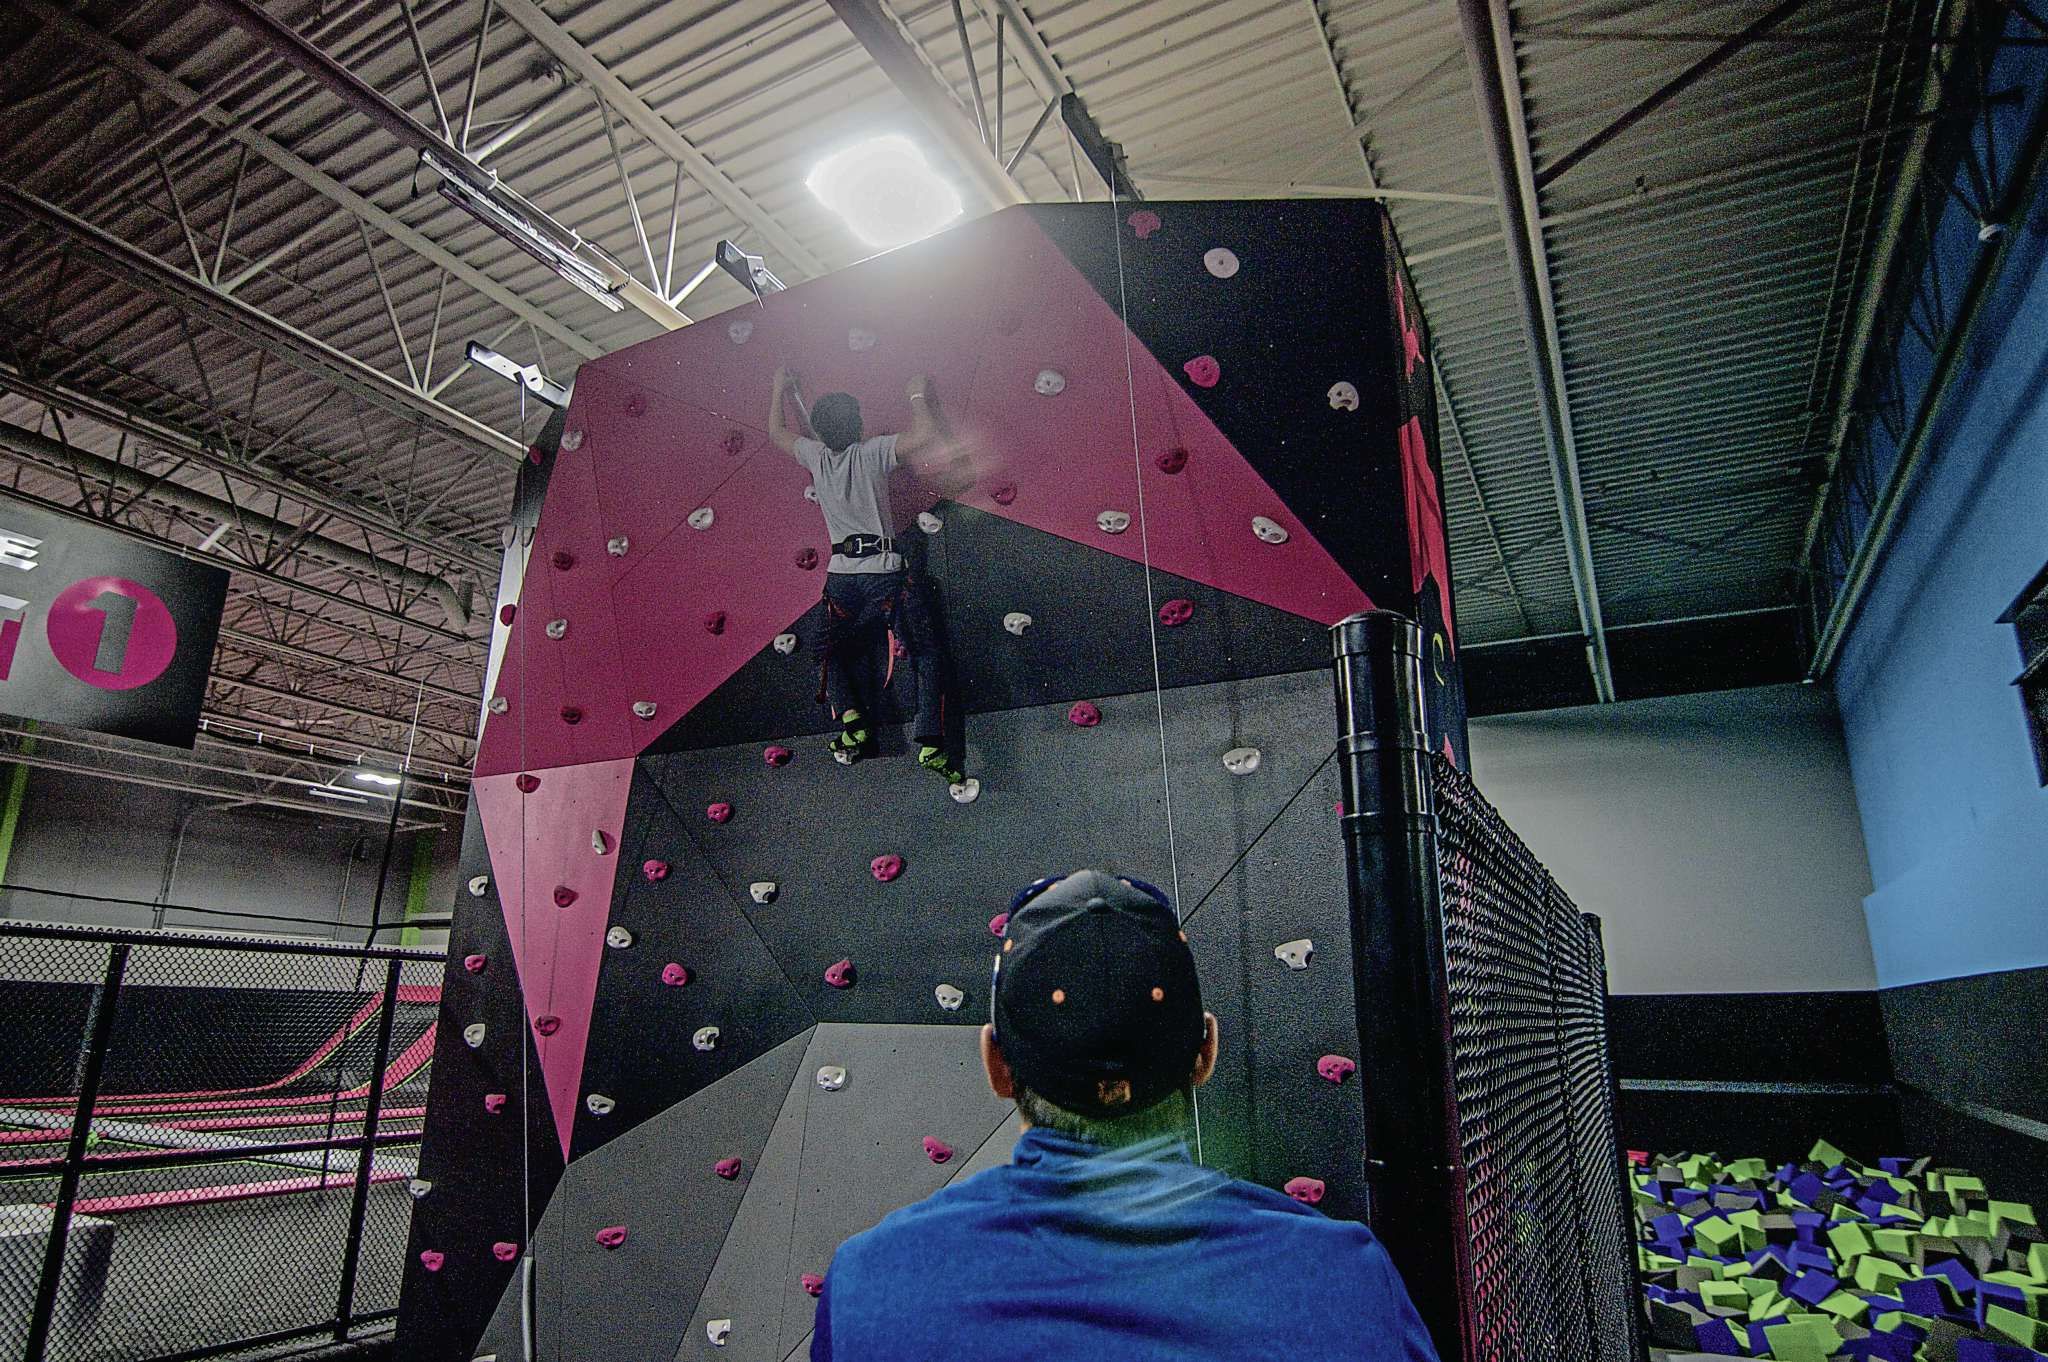 Flying Squirrel has a rock climbing wall (pictured) and foam pits with a gladiator beam and slack line.